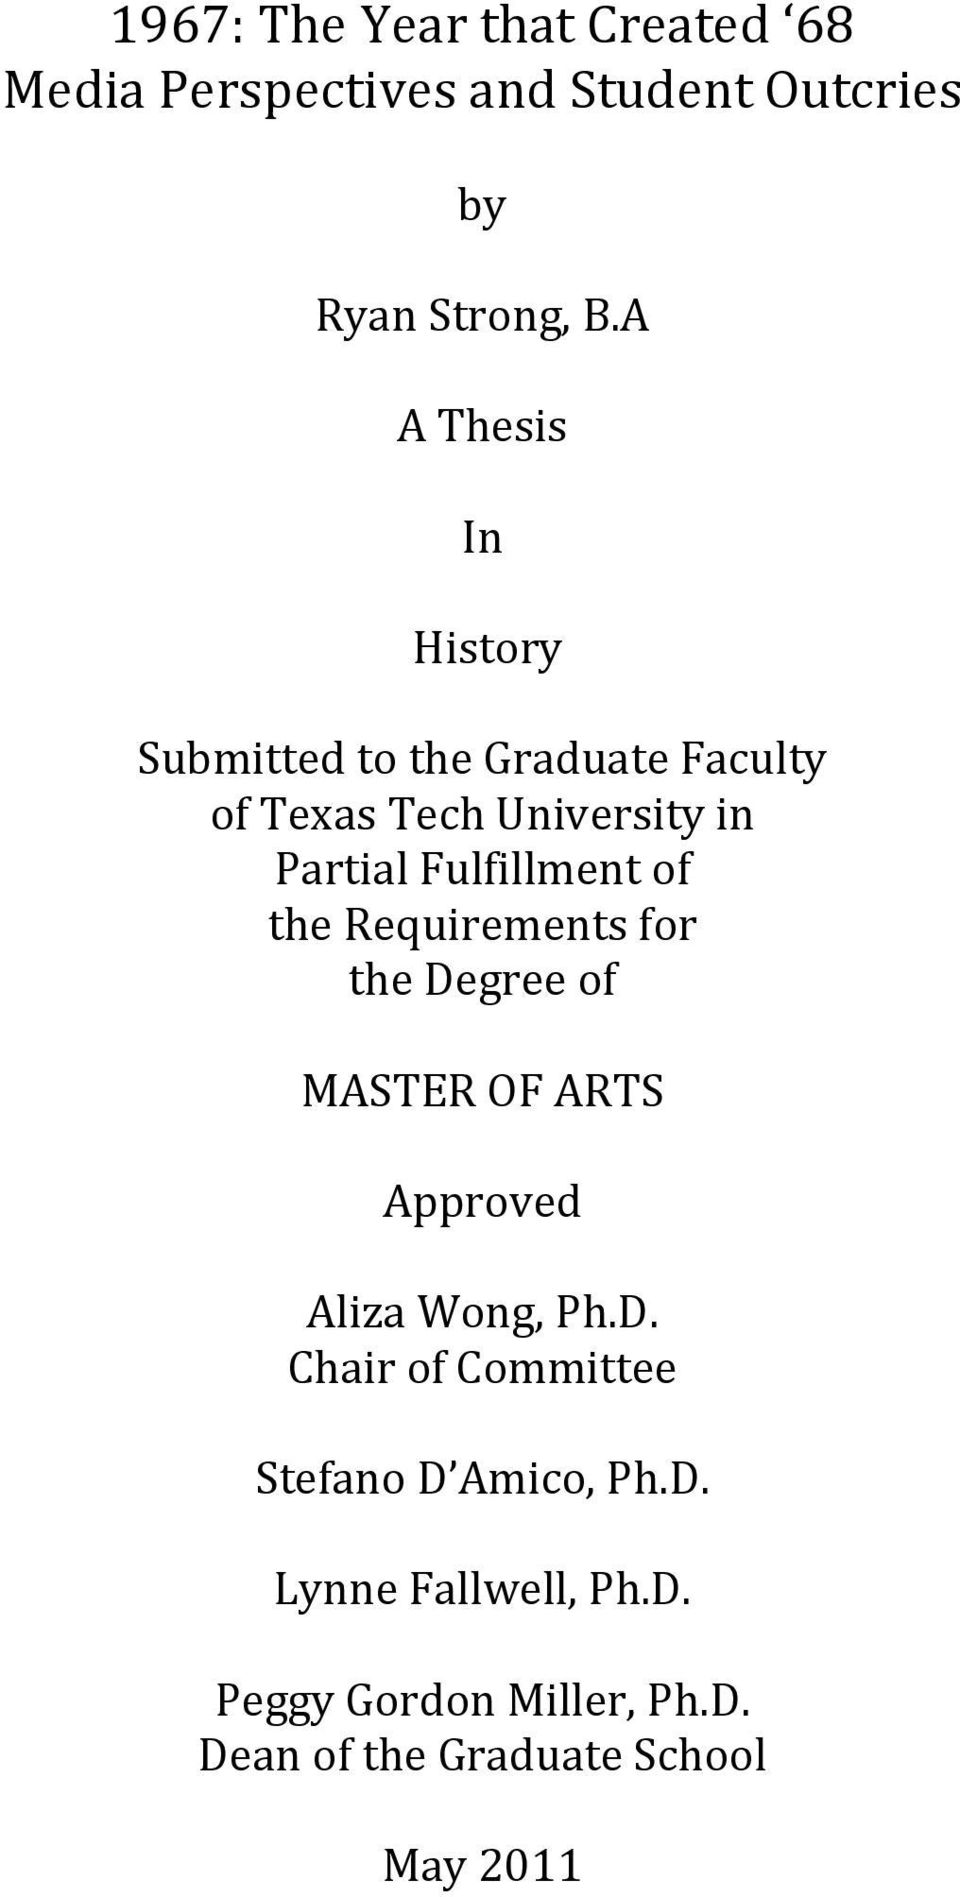 PartialFulfillmentof therequirementsfor thedegreeof MASTEROFARTS Approved AlizaWong,Ph.D.